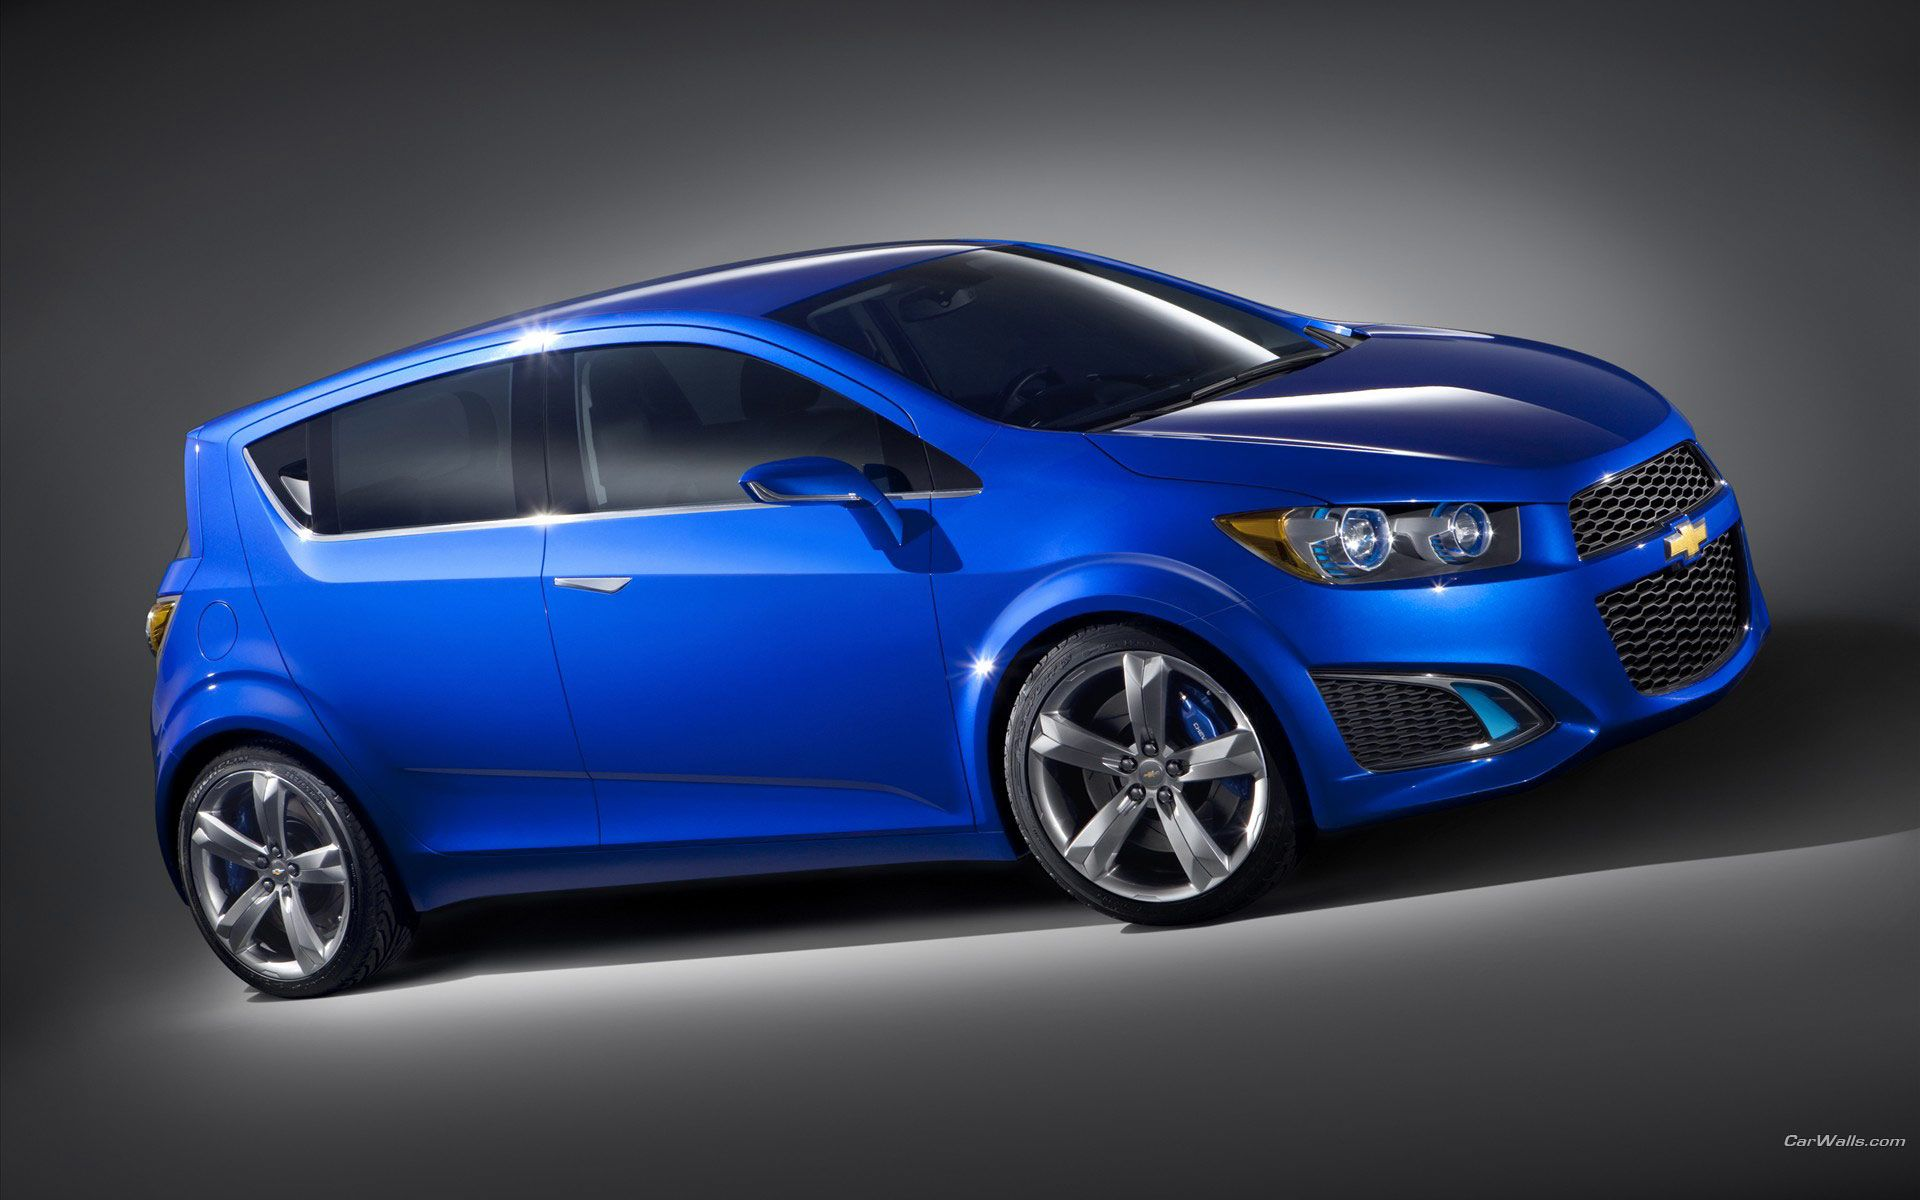 2016 chevrolet sonic is the featured model the 2016 chevrolet sonic hatchback image is added in car pictures category by the author on jun